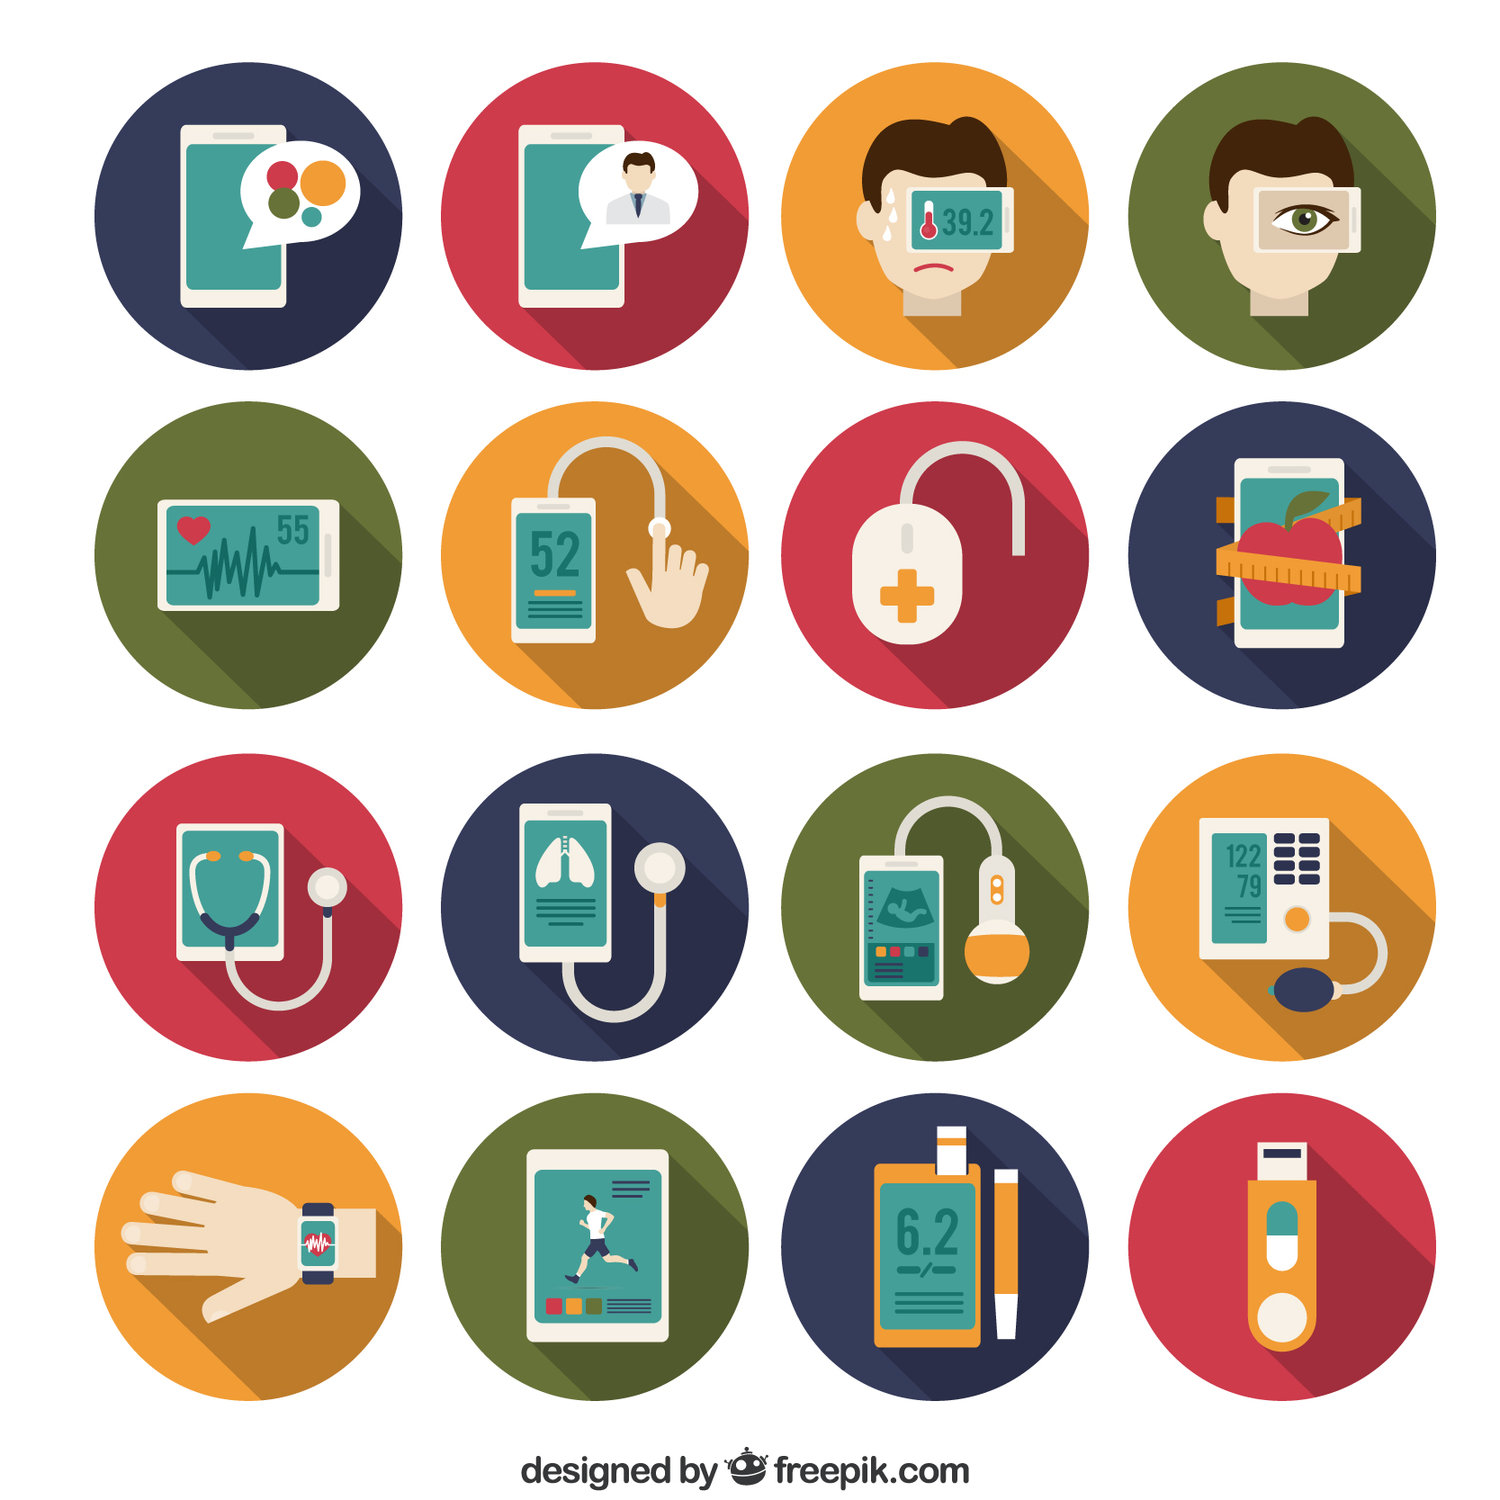 Telehealth Guidelines and Recommendations 2017